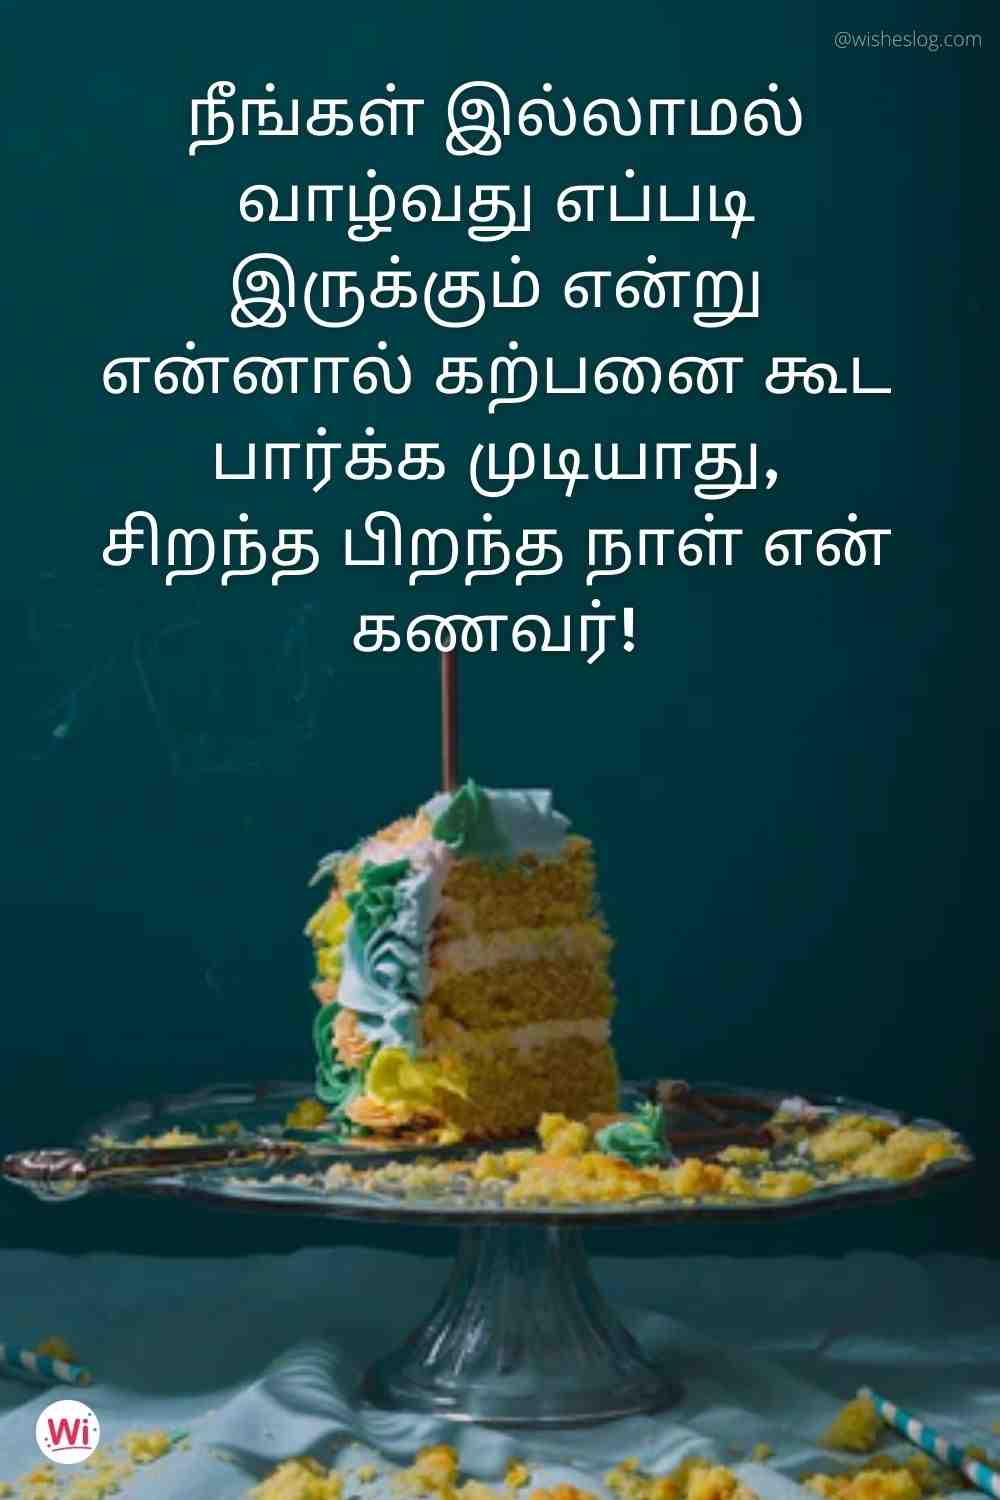 happy birthday images in tamil for hubby